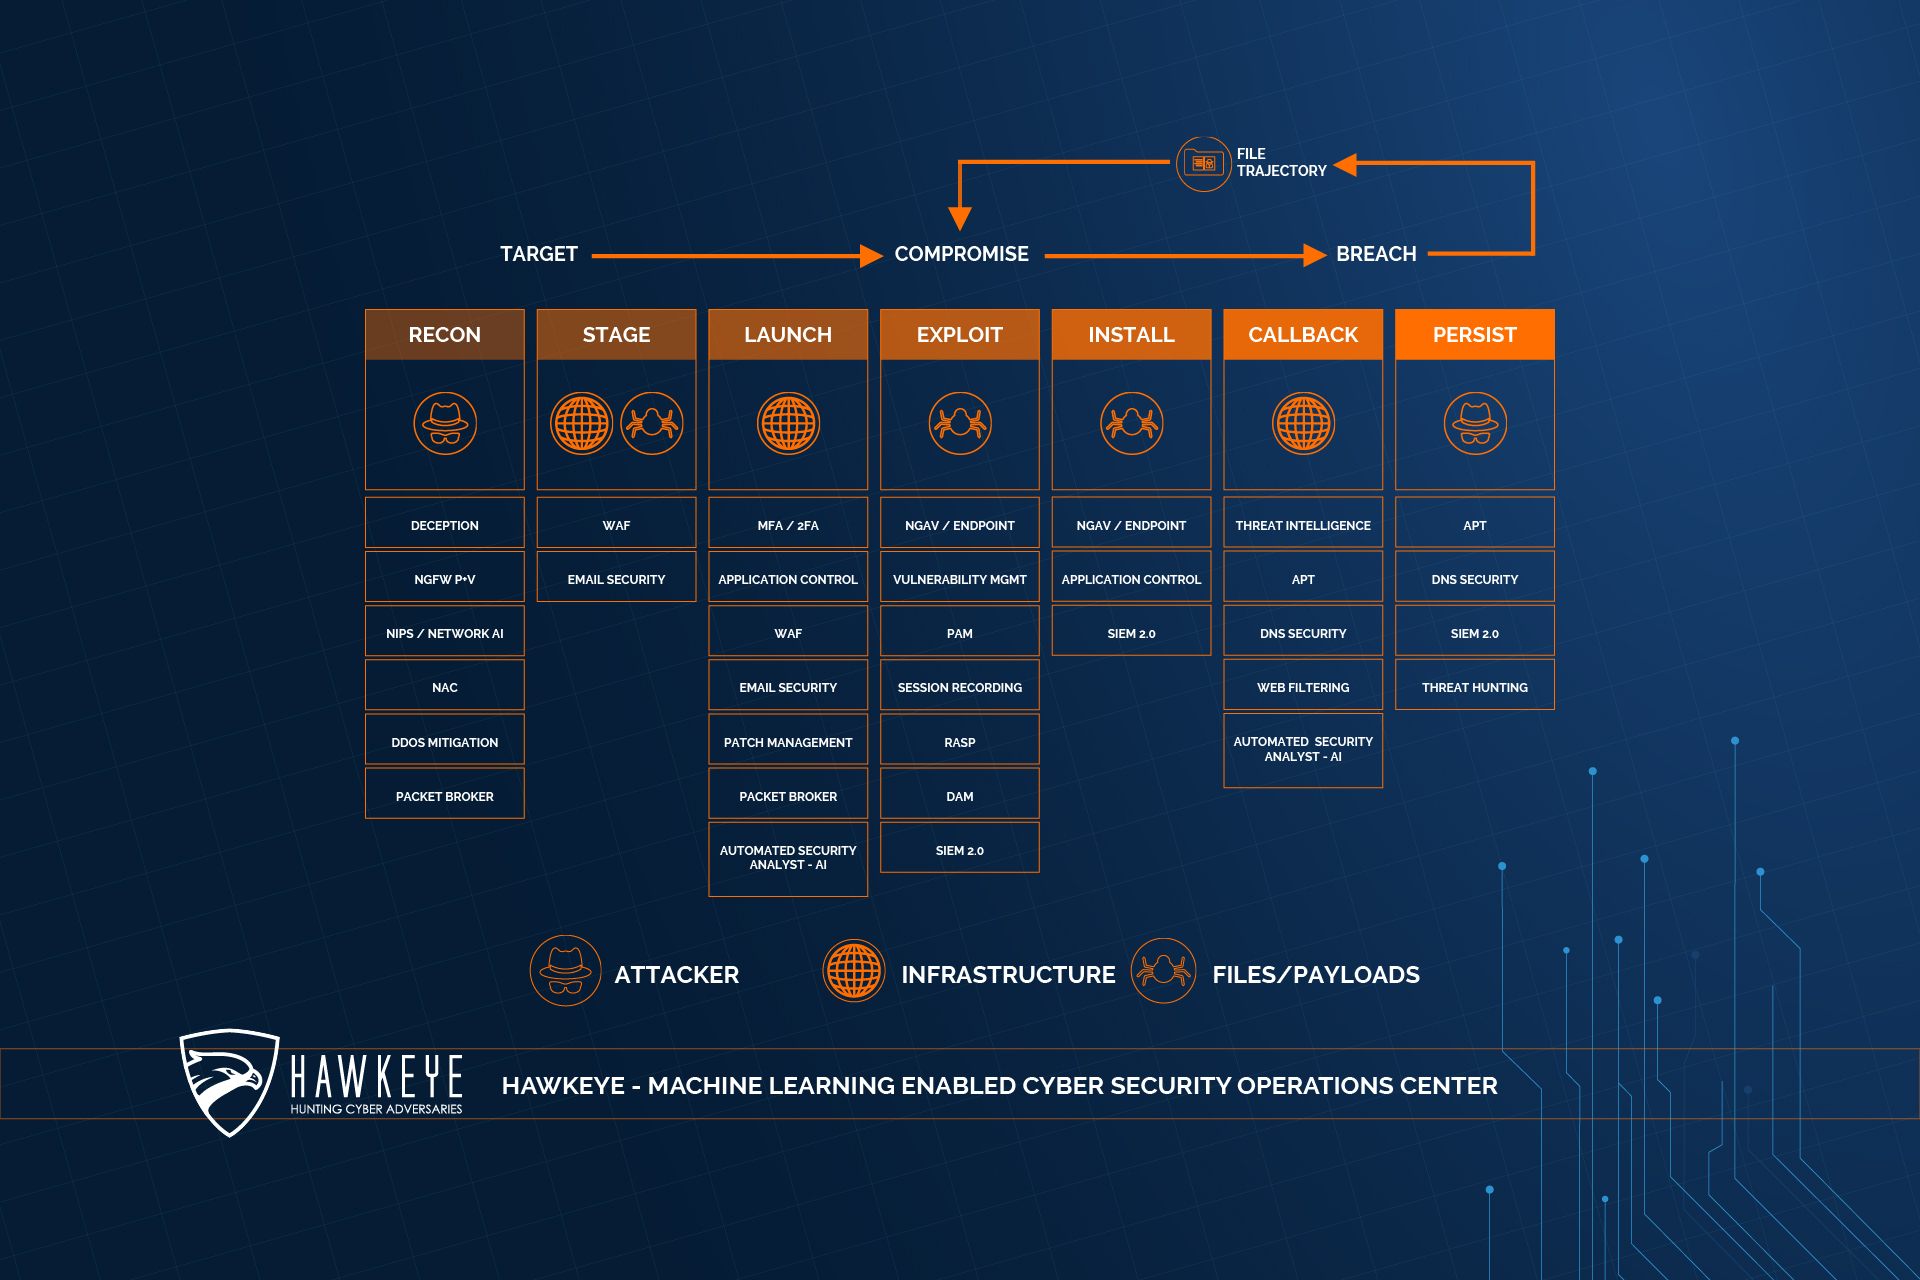 HawkEye - Cyber Security Kill Chain